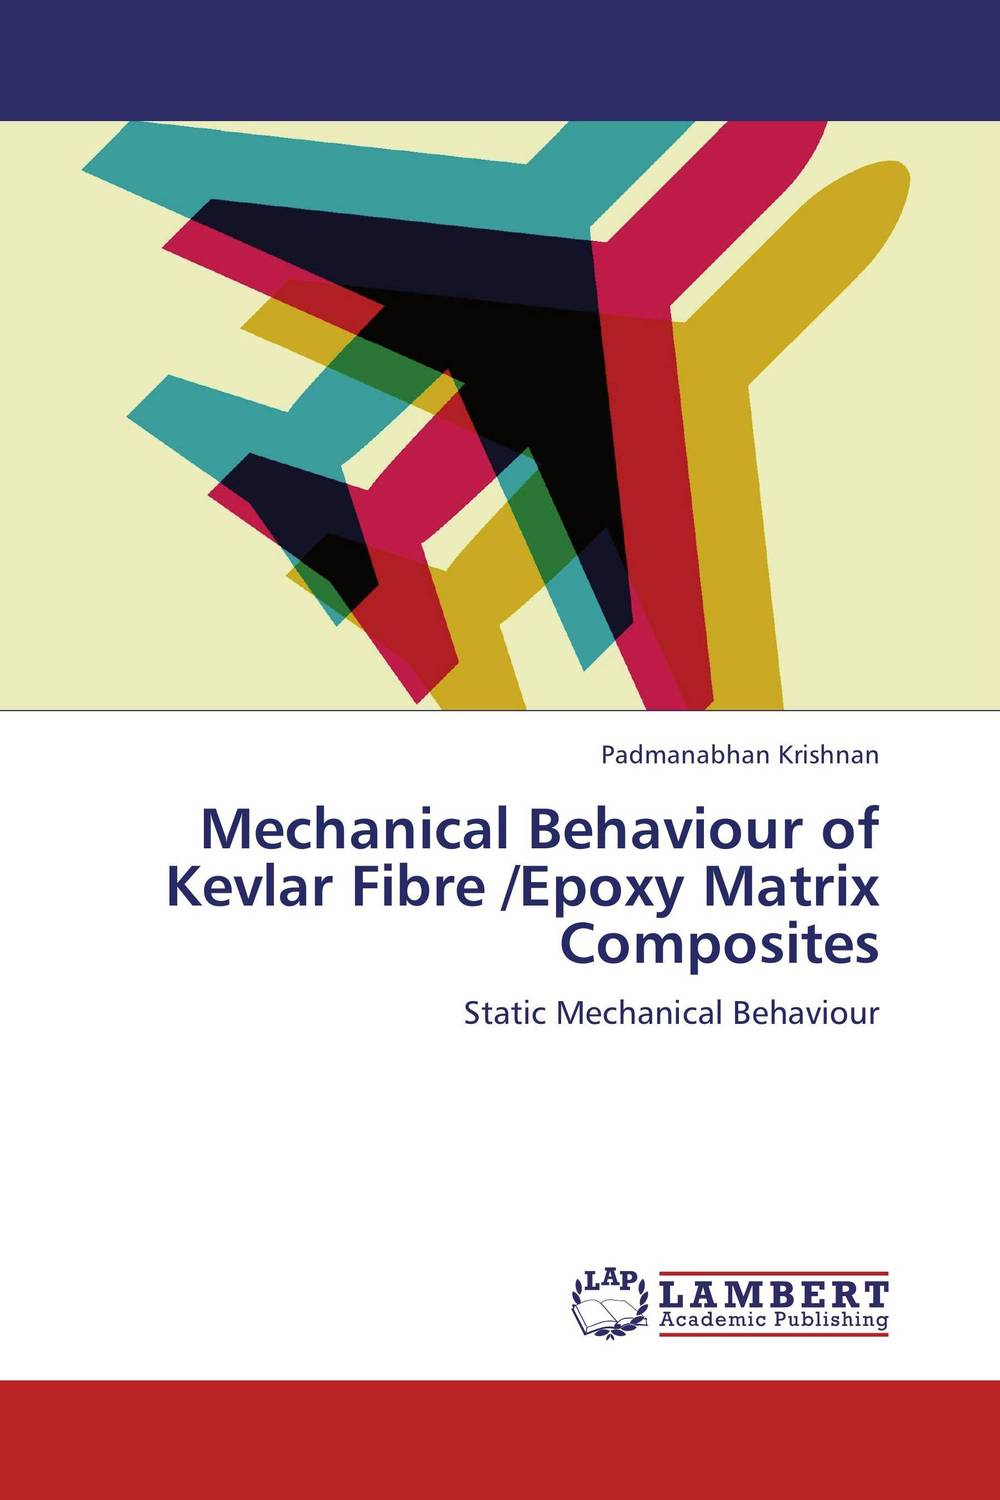 Mechanical Behaviour of Kevlar Fibre /Epoxy Matrix Composites bolted joints in laminated composites